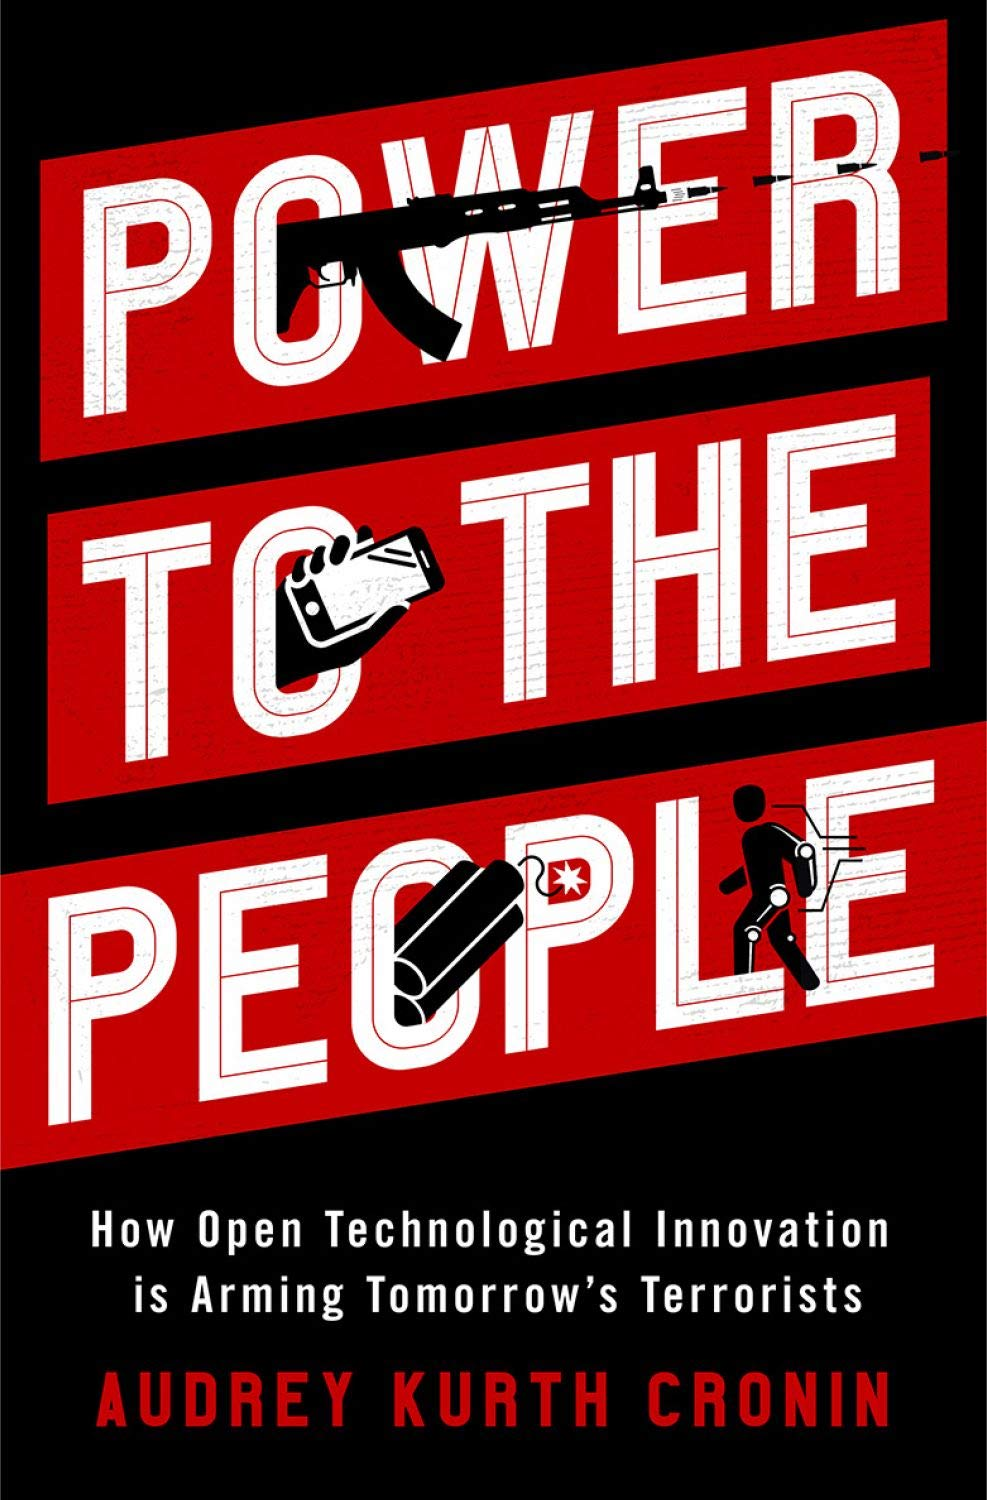 Image OfPower To The People: How Open Technological Innovation Is Arming Tomorrow's Terrorists